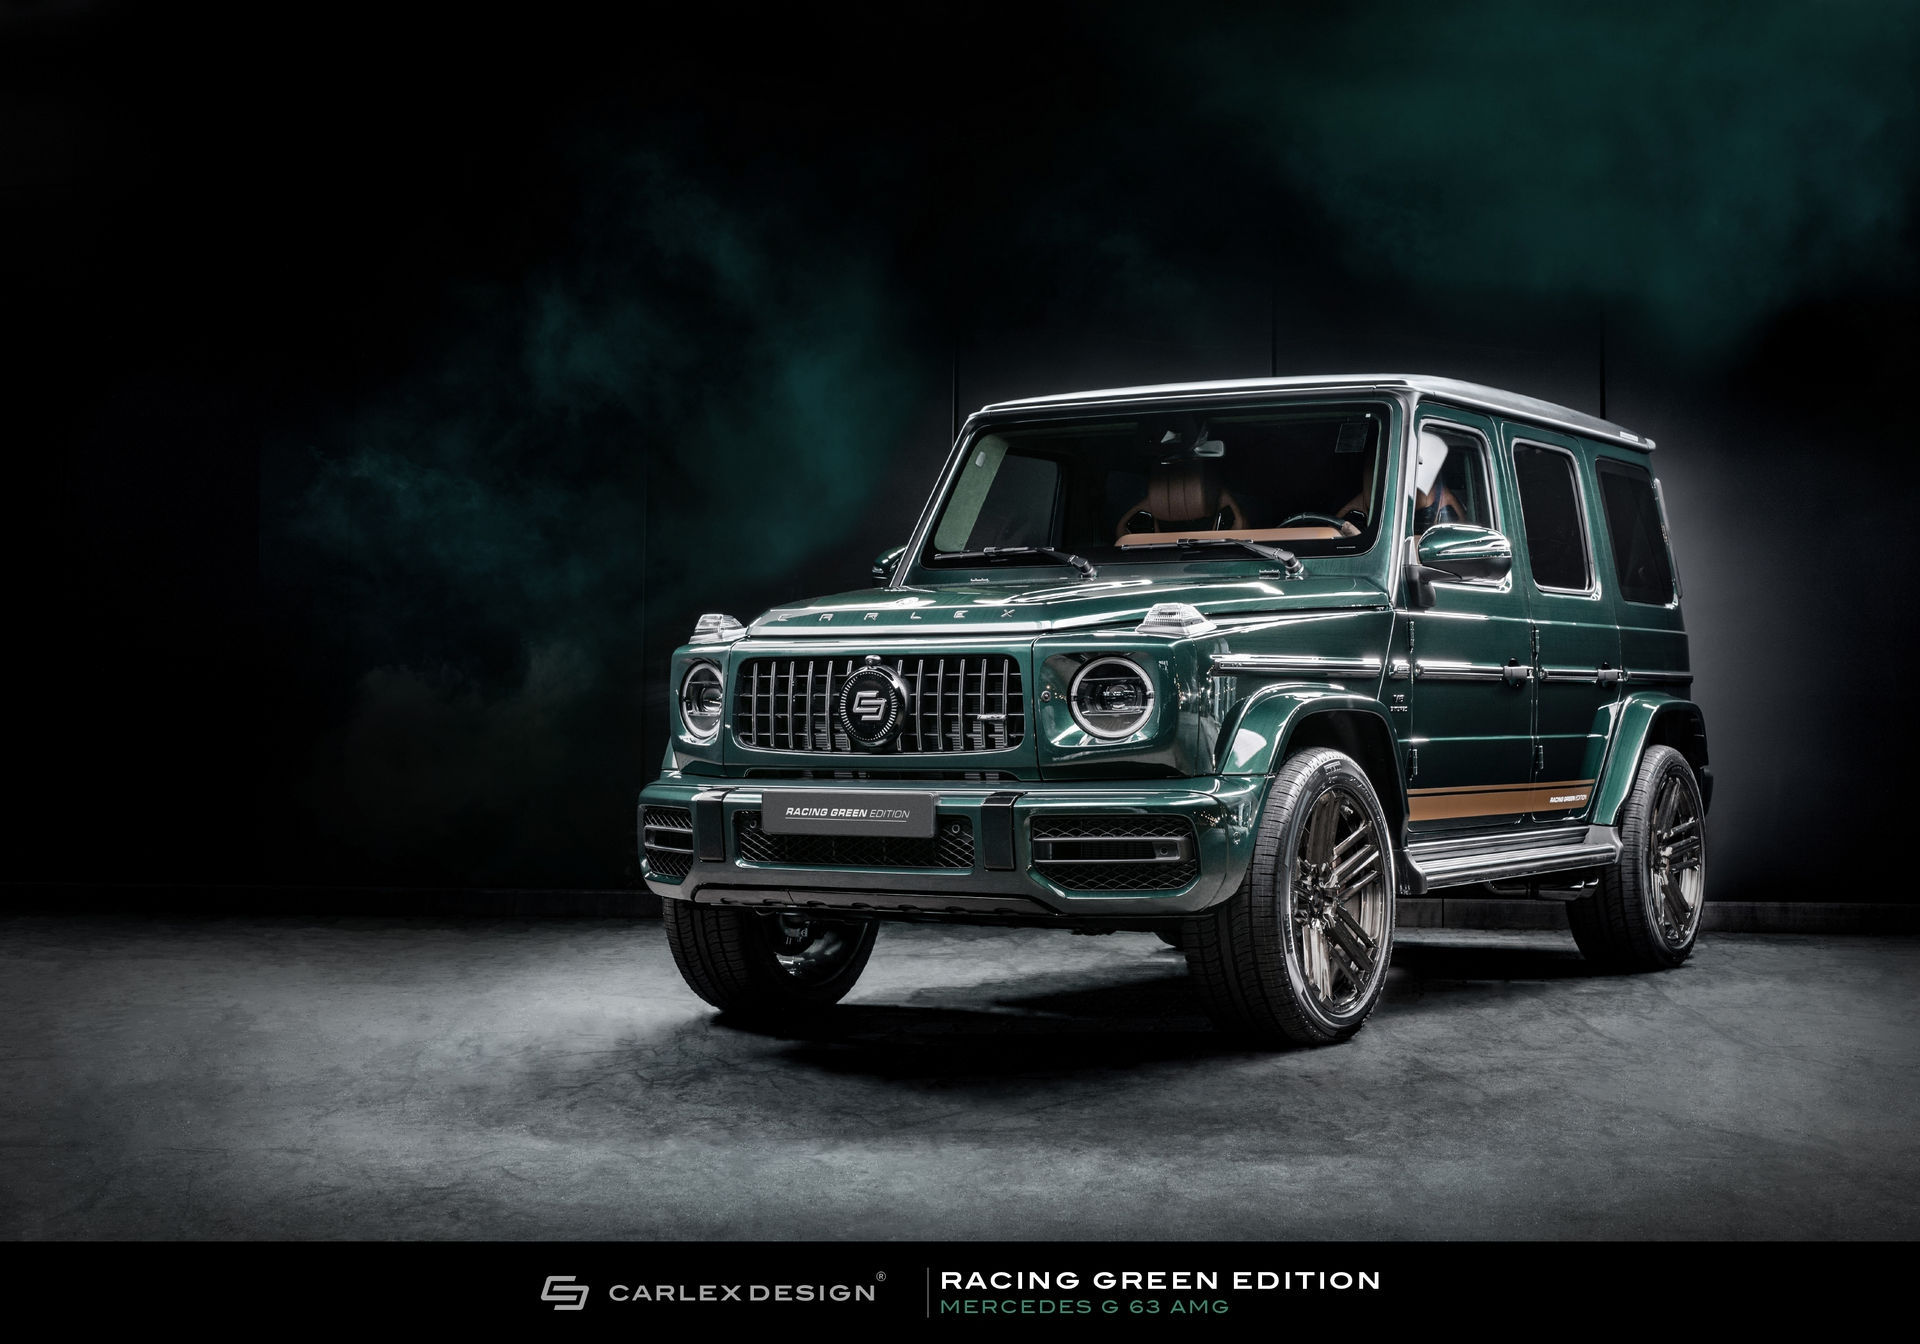 Mercedes Classe G Racing Green Edition